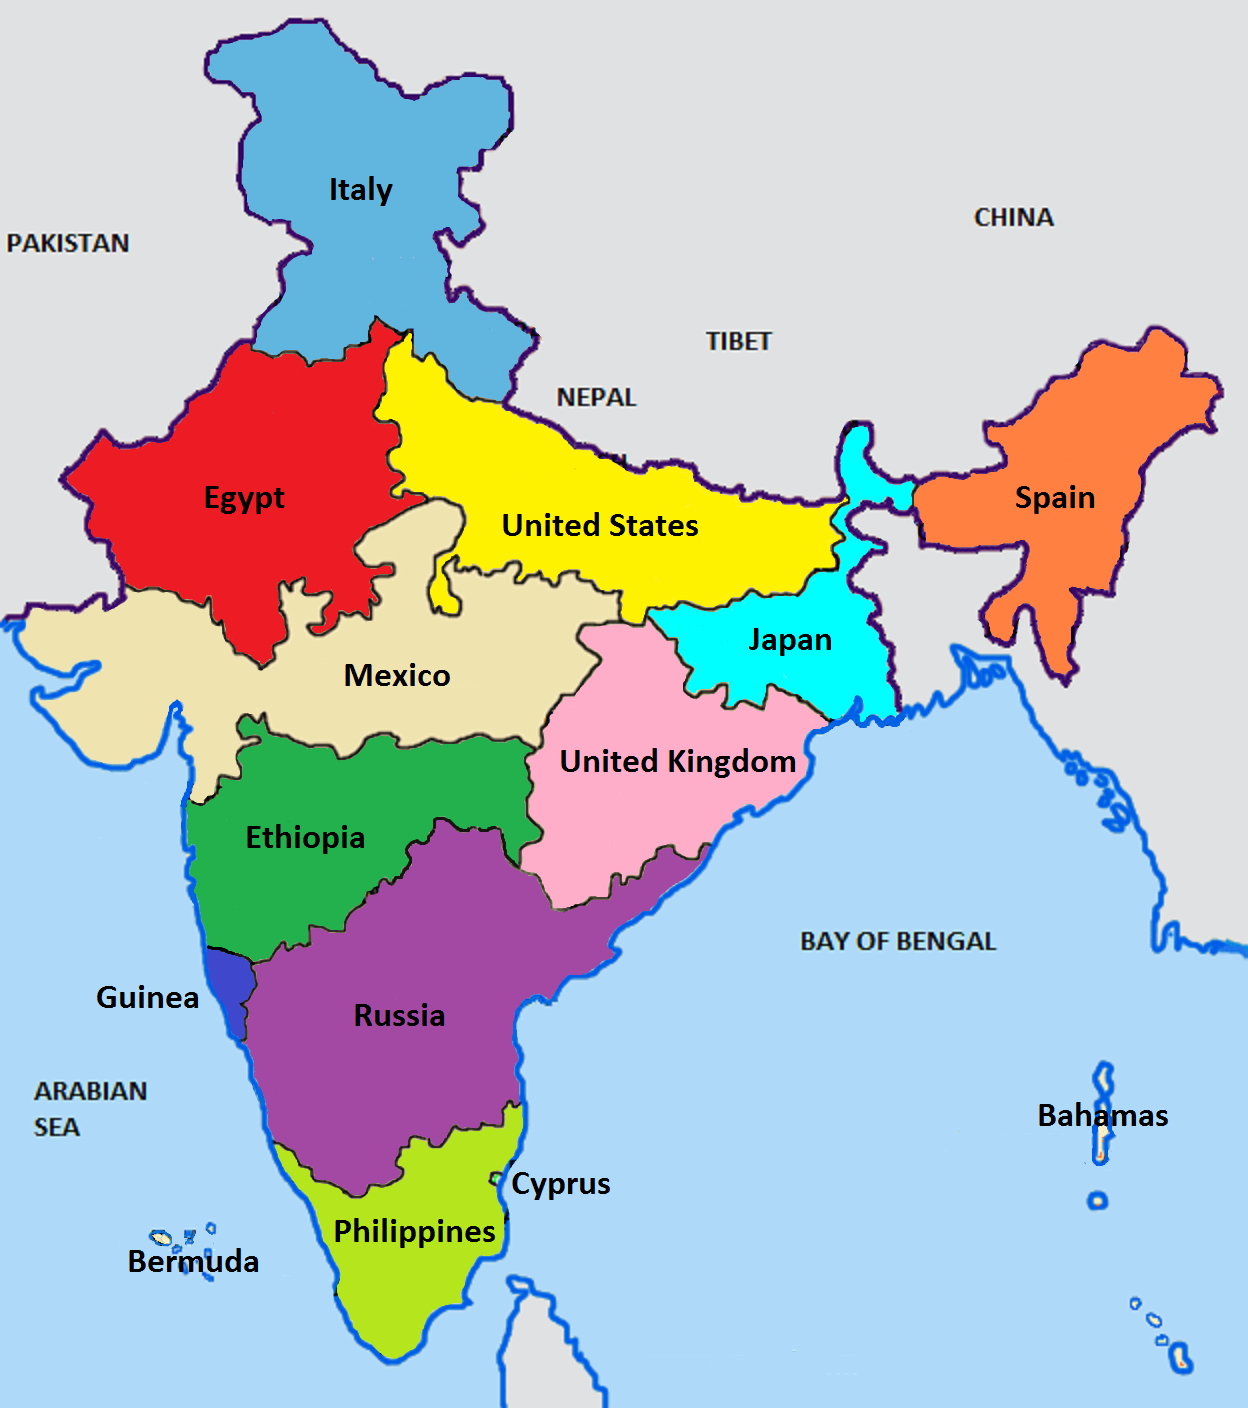 Indias Population Compared With Other Countries India Pinterest - Map of just egypt